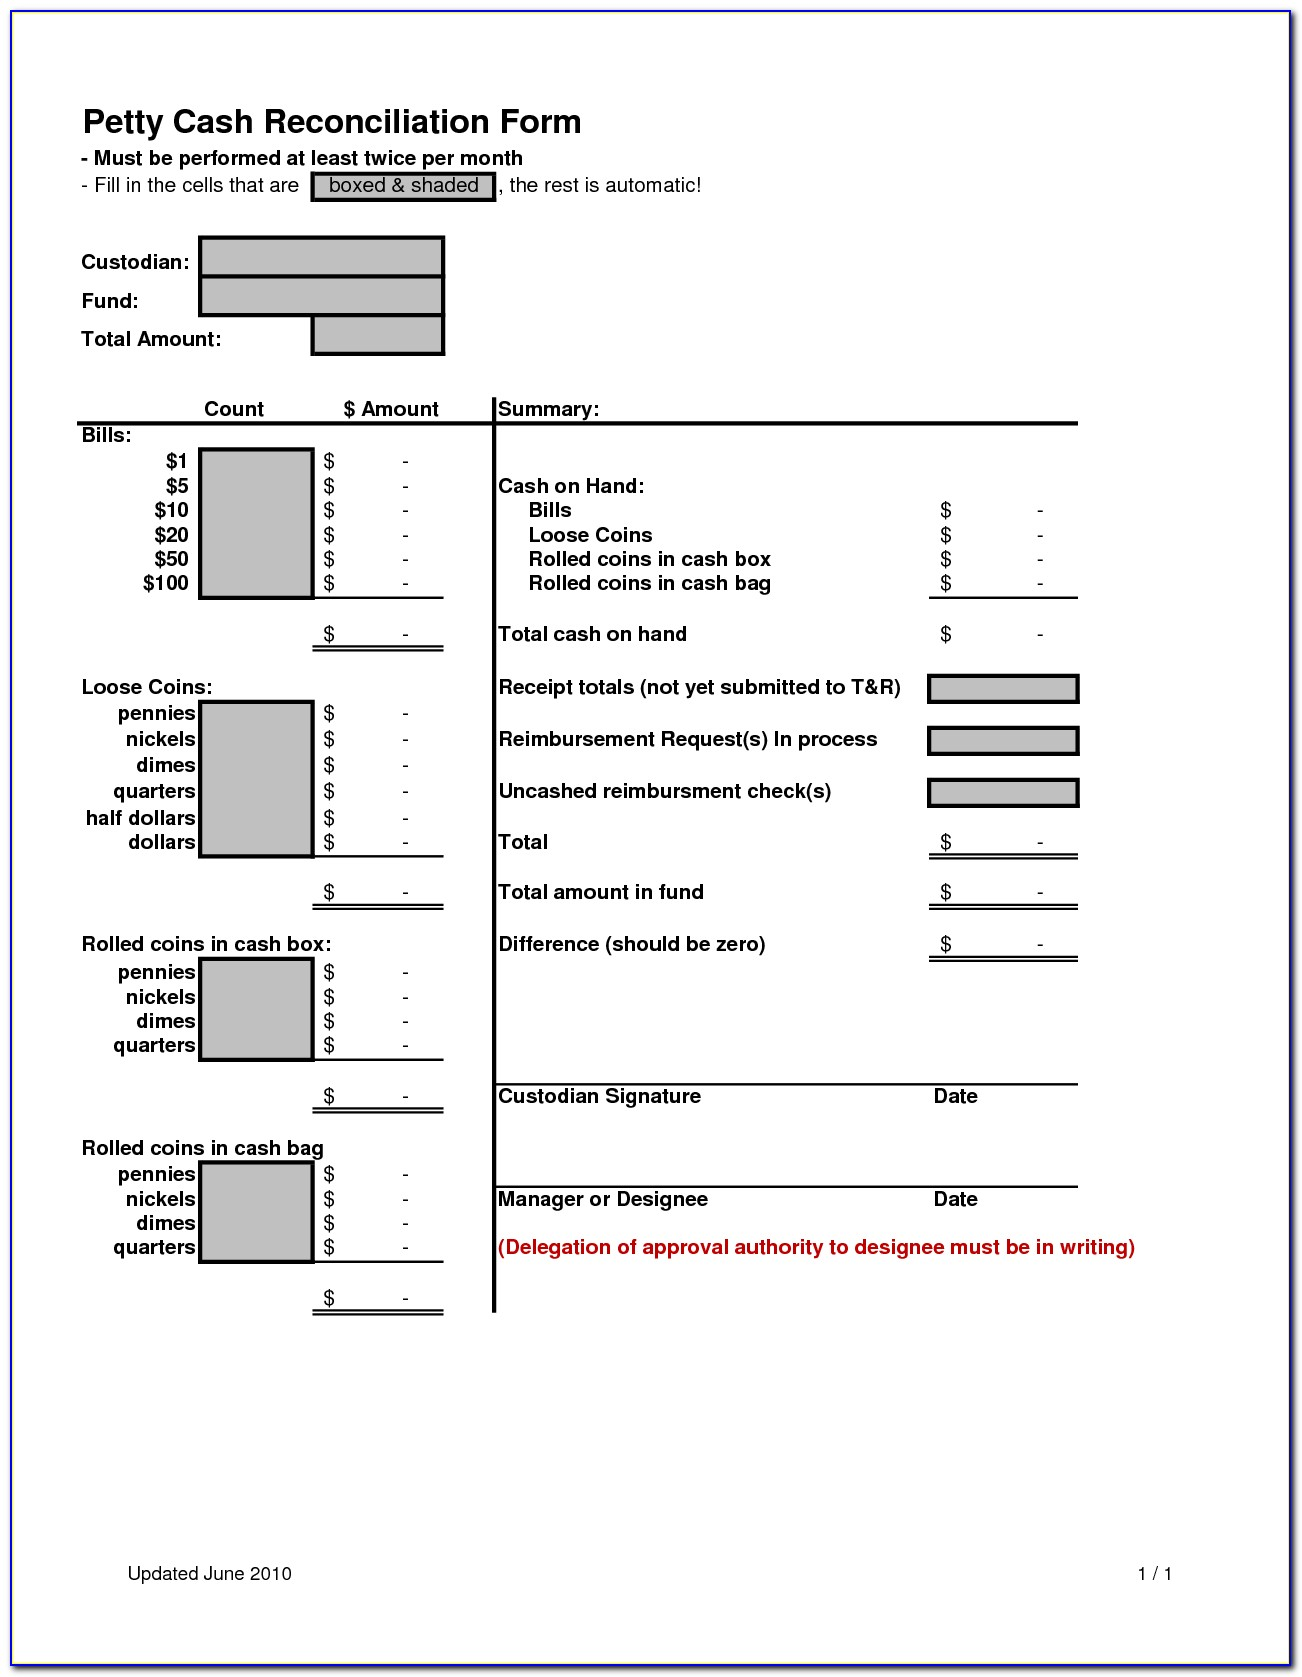 Daily Cash Reconciliation Form Template